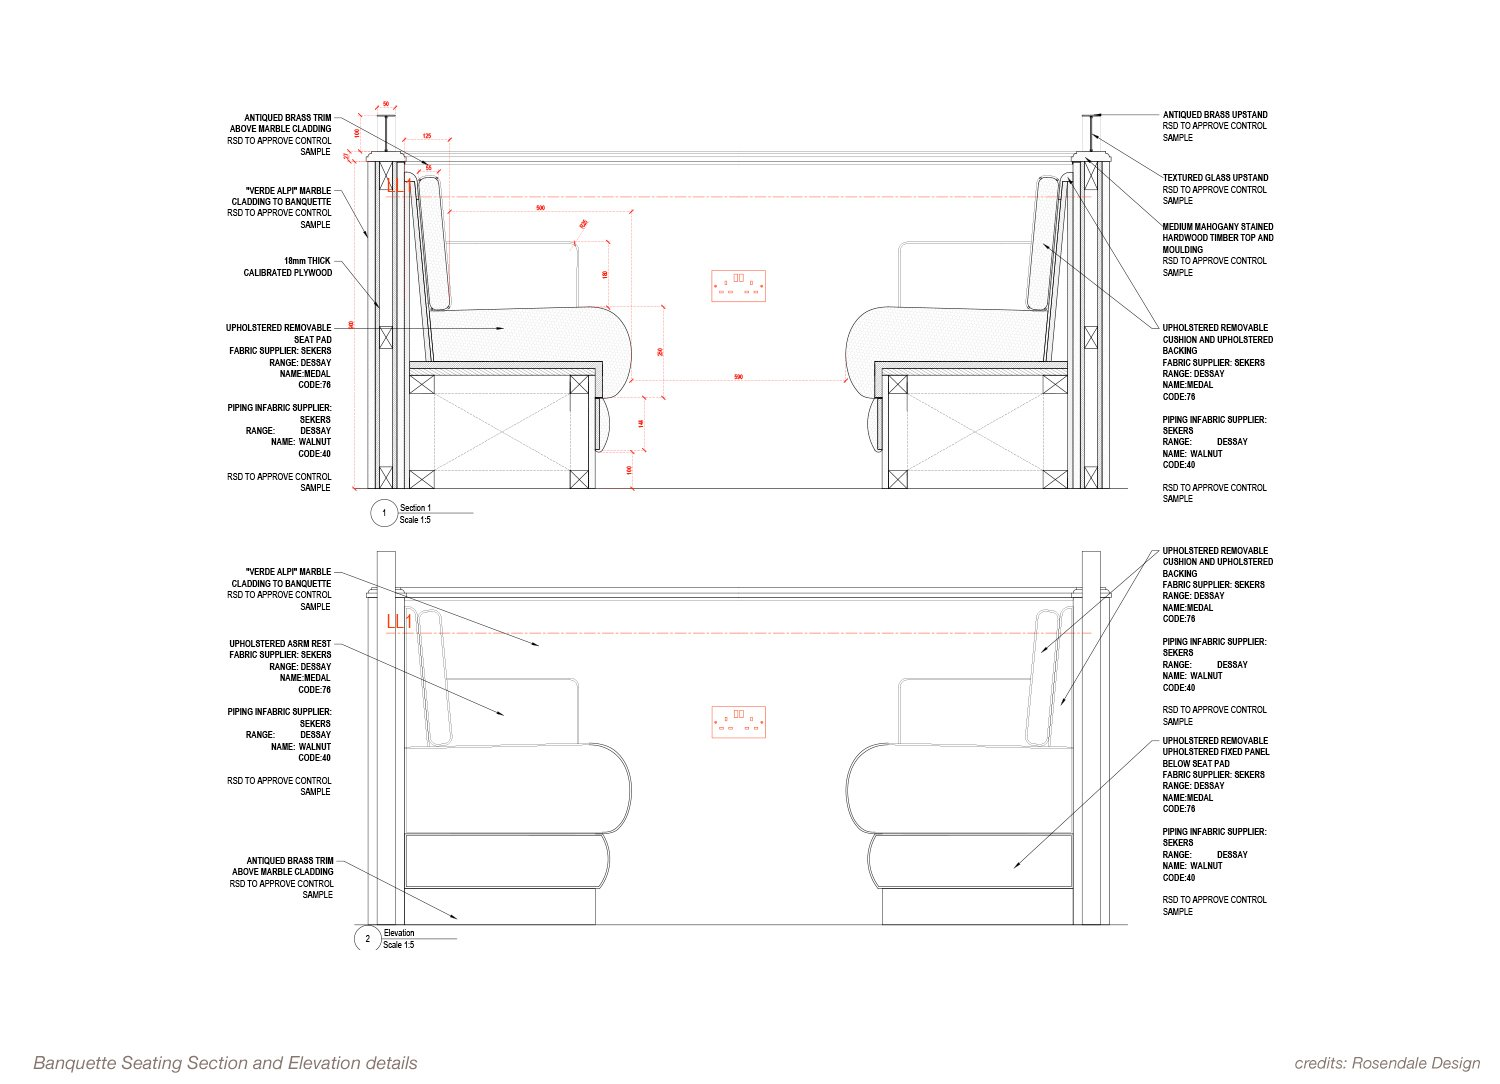 Banquette Seating Section and Elevation details Rosendale Design}